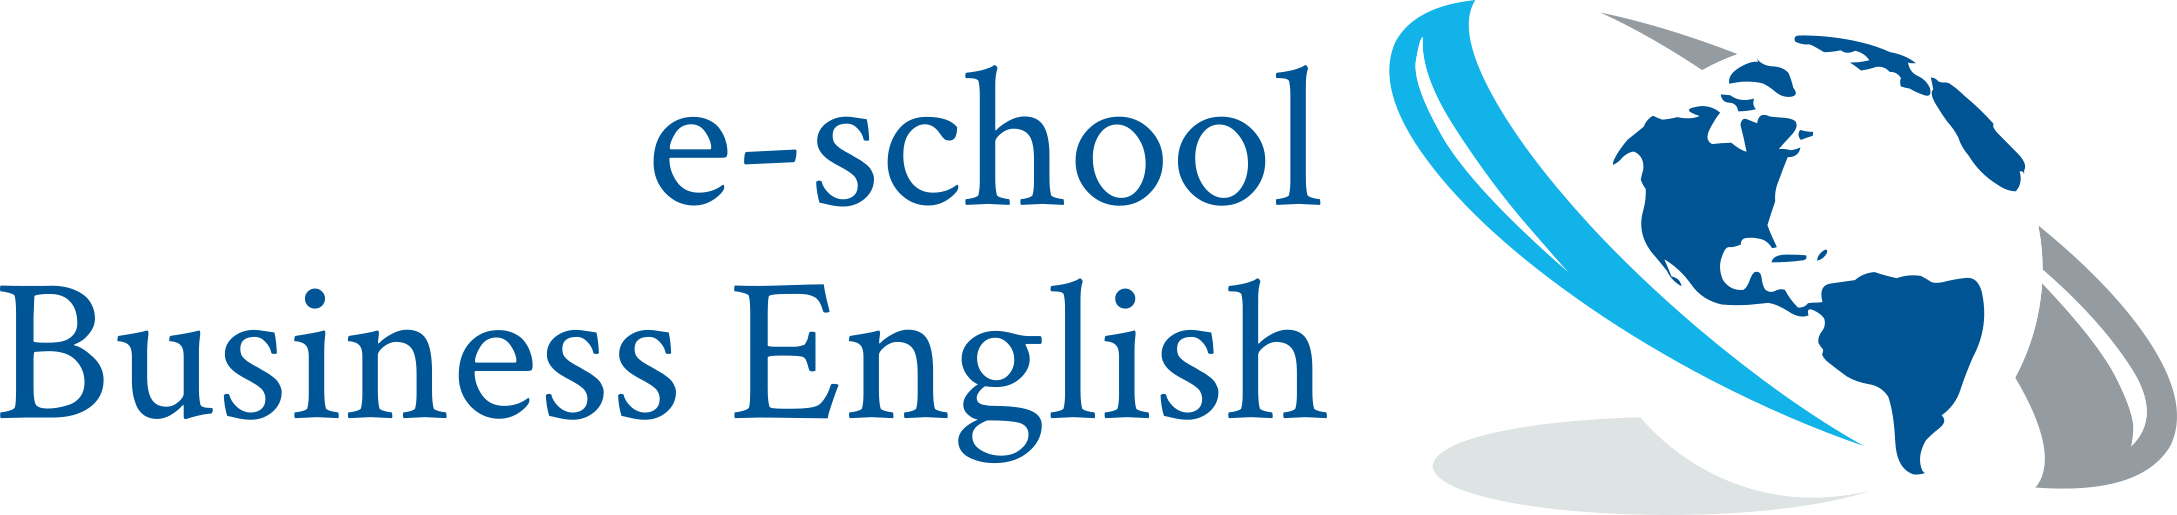 Business English e-school